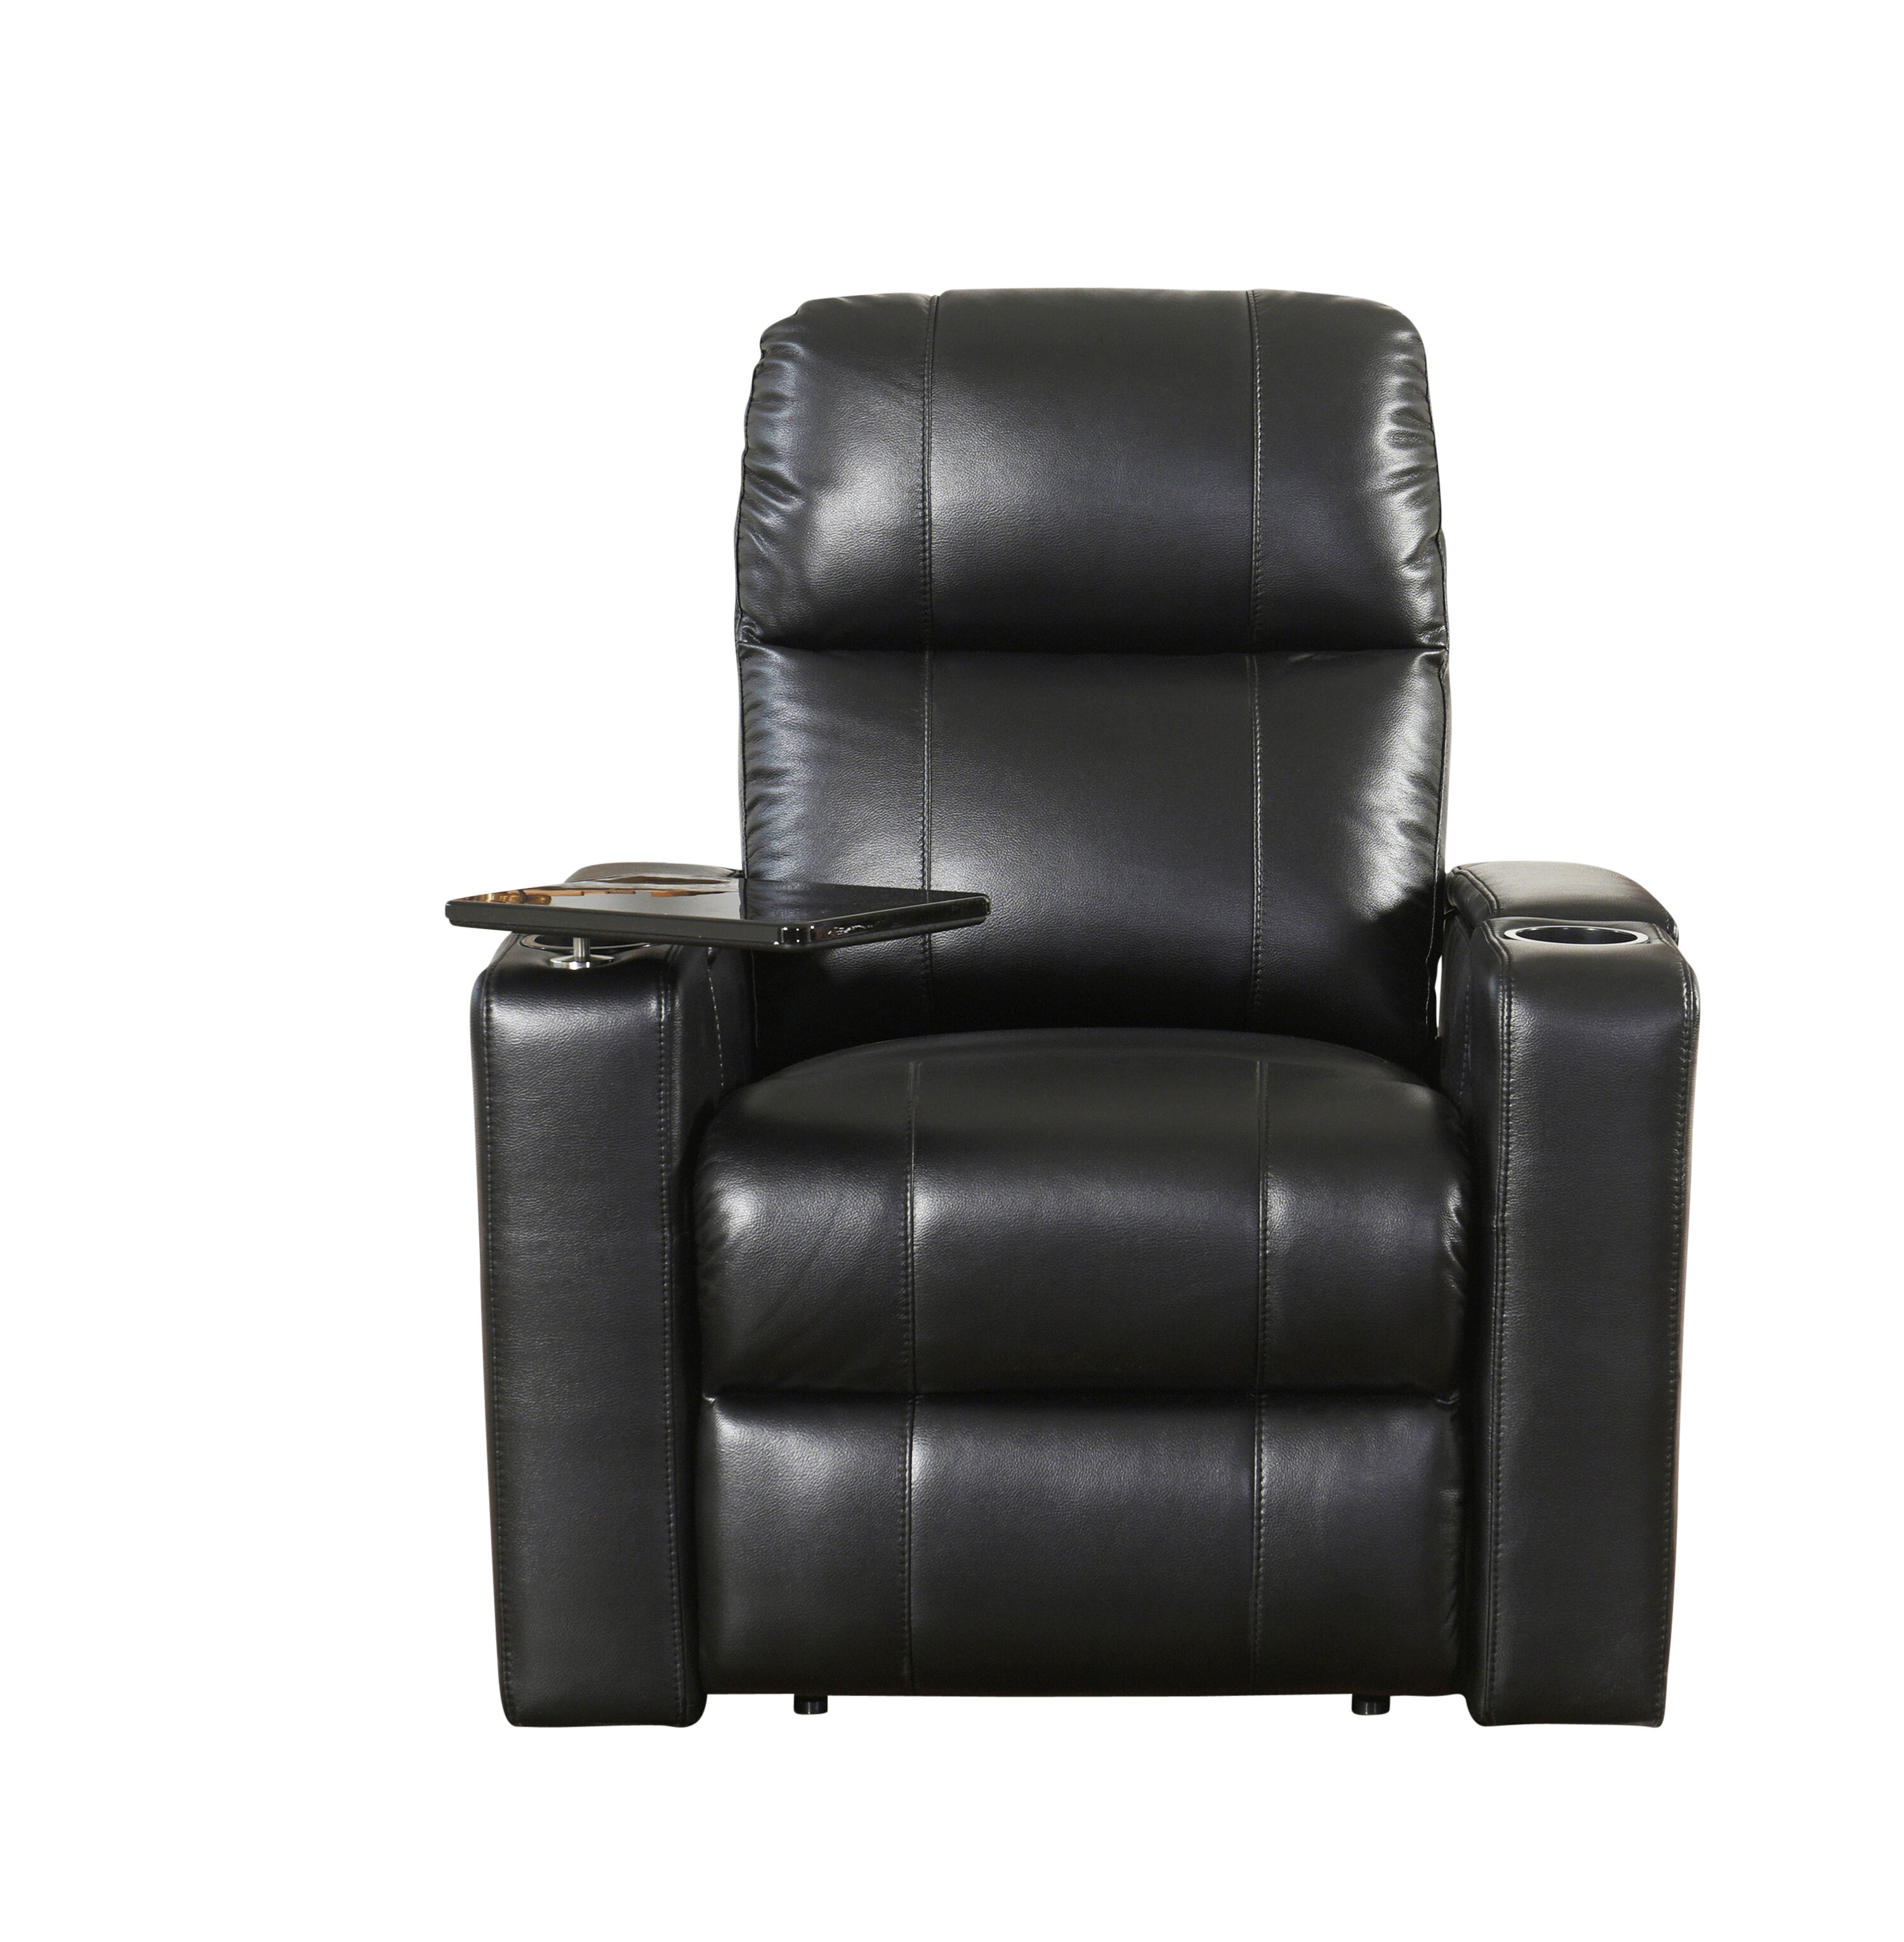 petite rise chairs recline and recliner category product disabled beds mobility recliners products vale wigan powered elderly